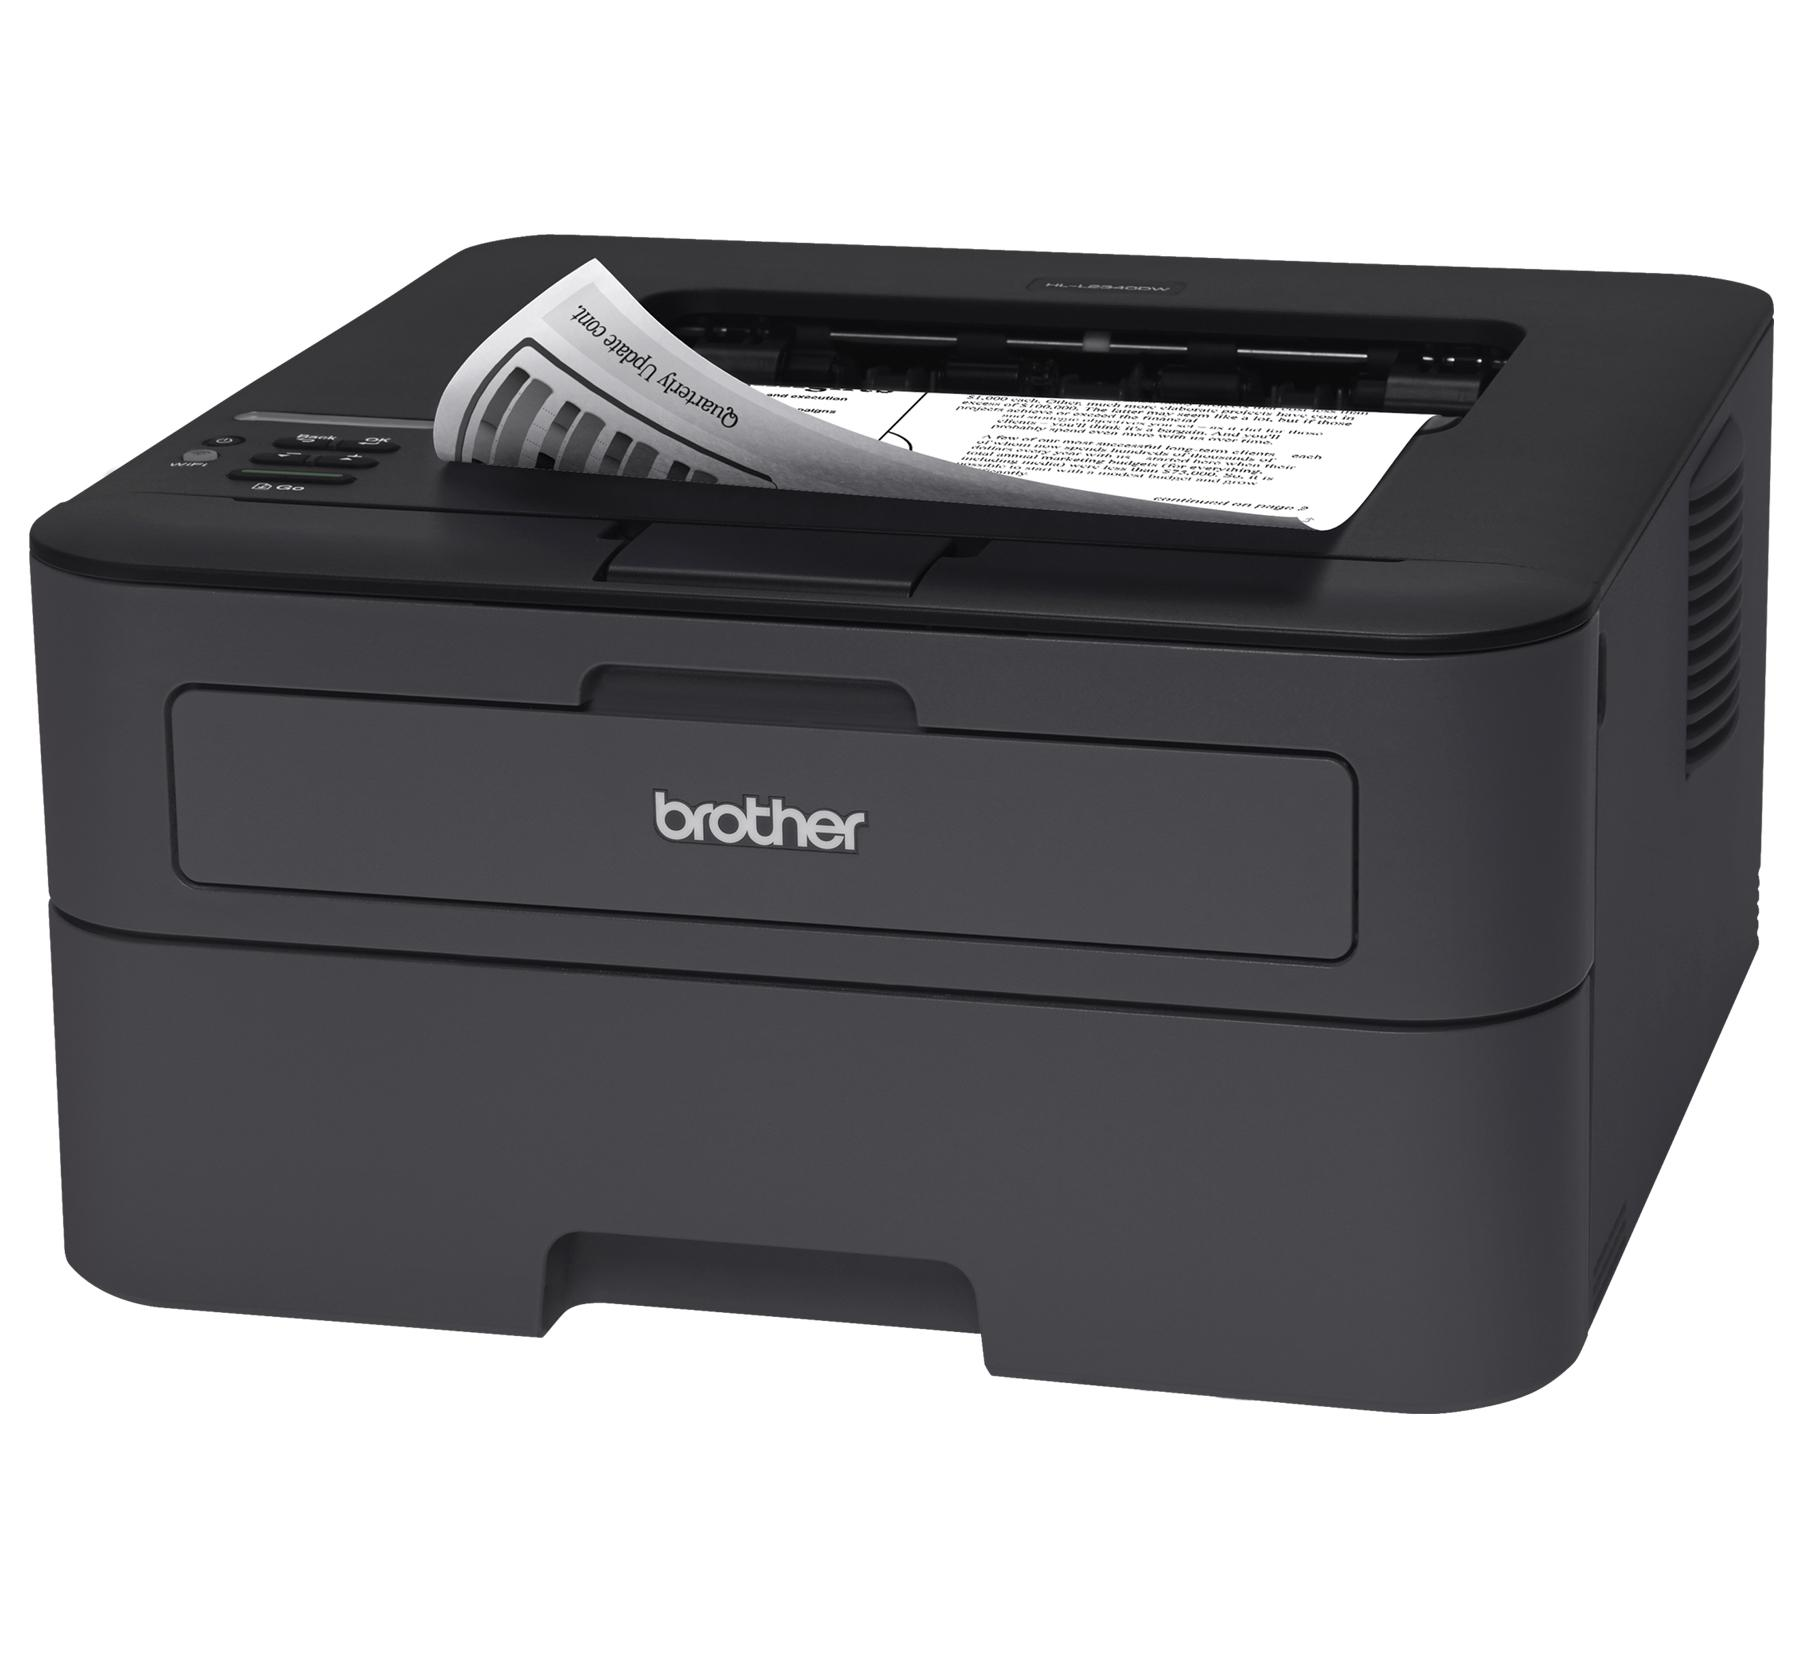 Brother Printer with AirPrint and Google Cloud Print — Tools